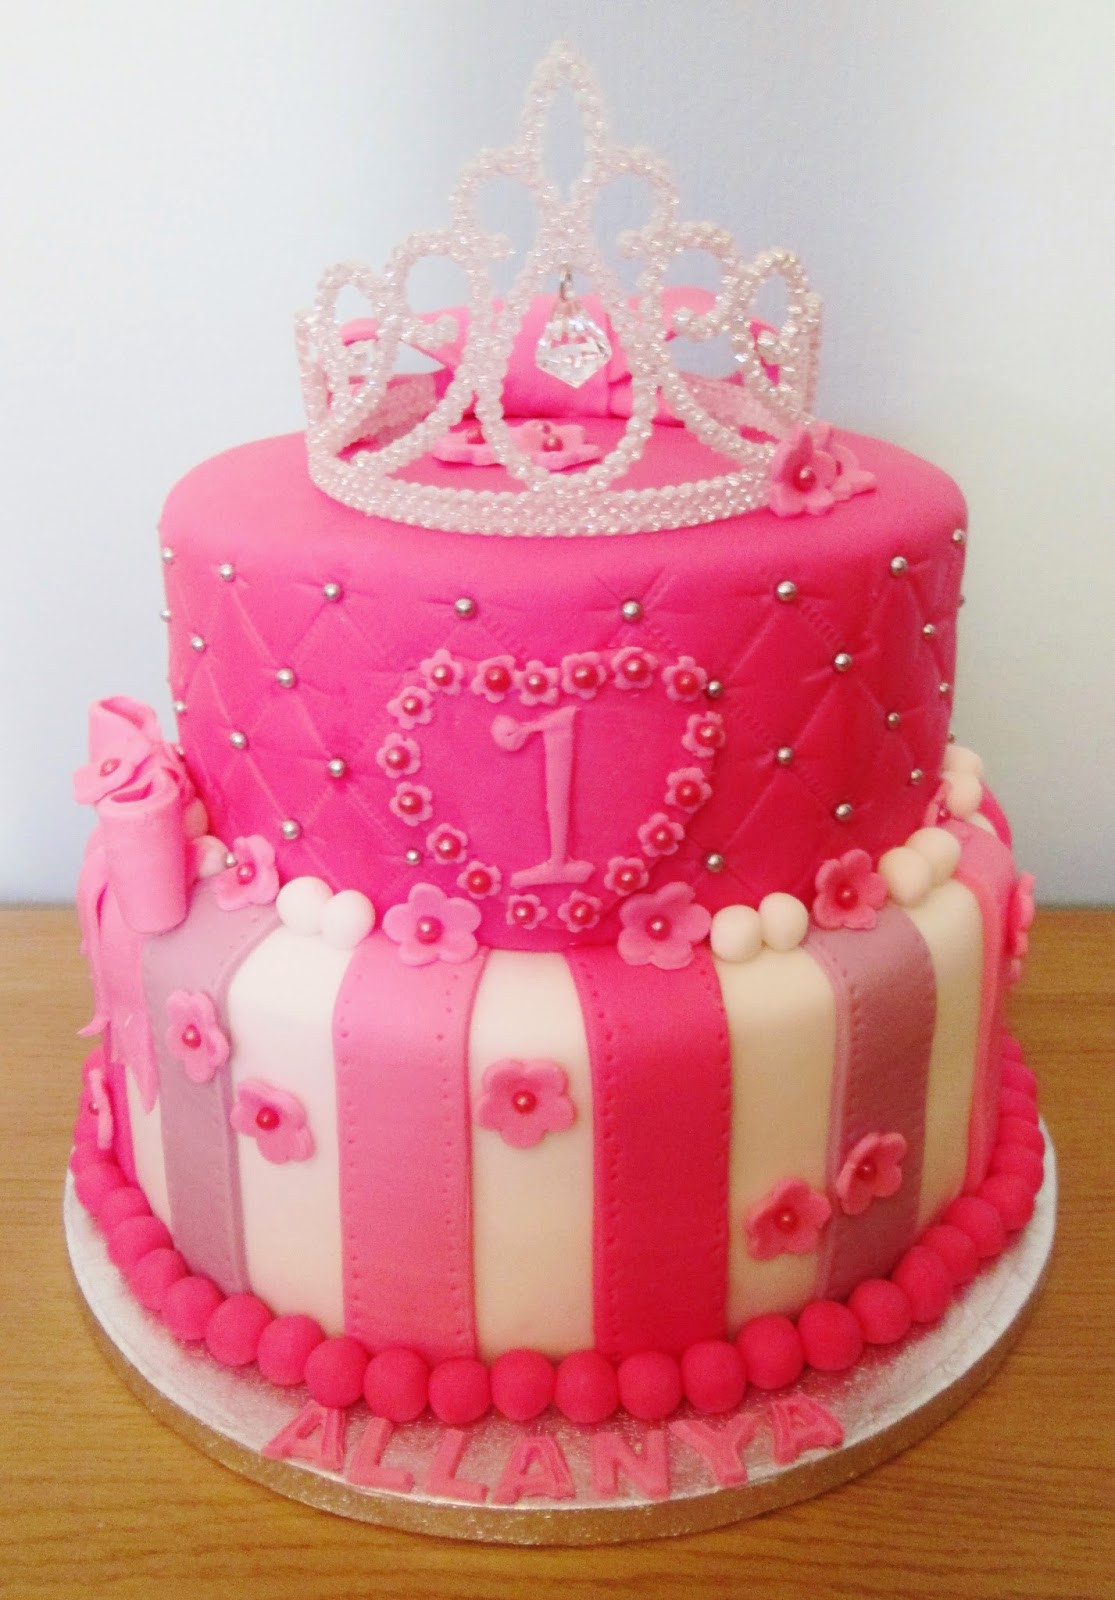 Best ideas about Two Tiered Birthday Cake . Save or Pin THE MESSY KITCHEN Basic sponge cake recipe Two tier etc Now.